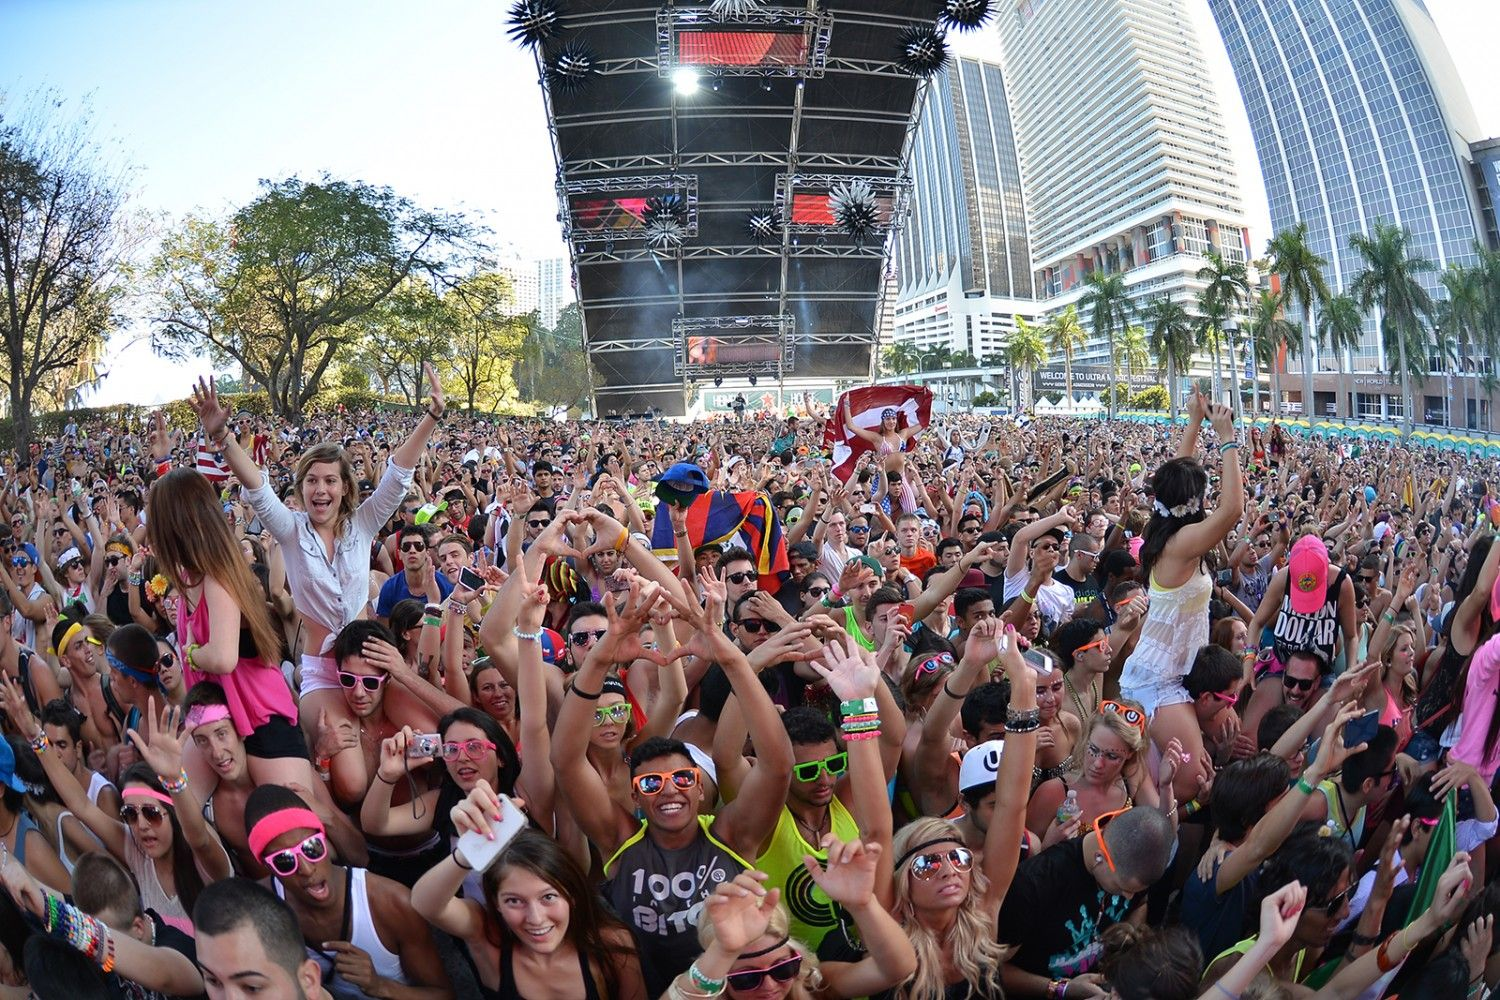 Ultra-music-festival-week-1-miami-fl-2013-1500x1000-compressor